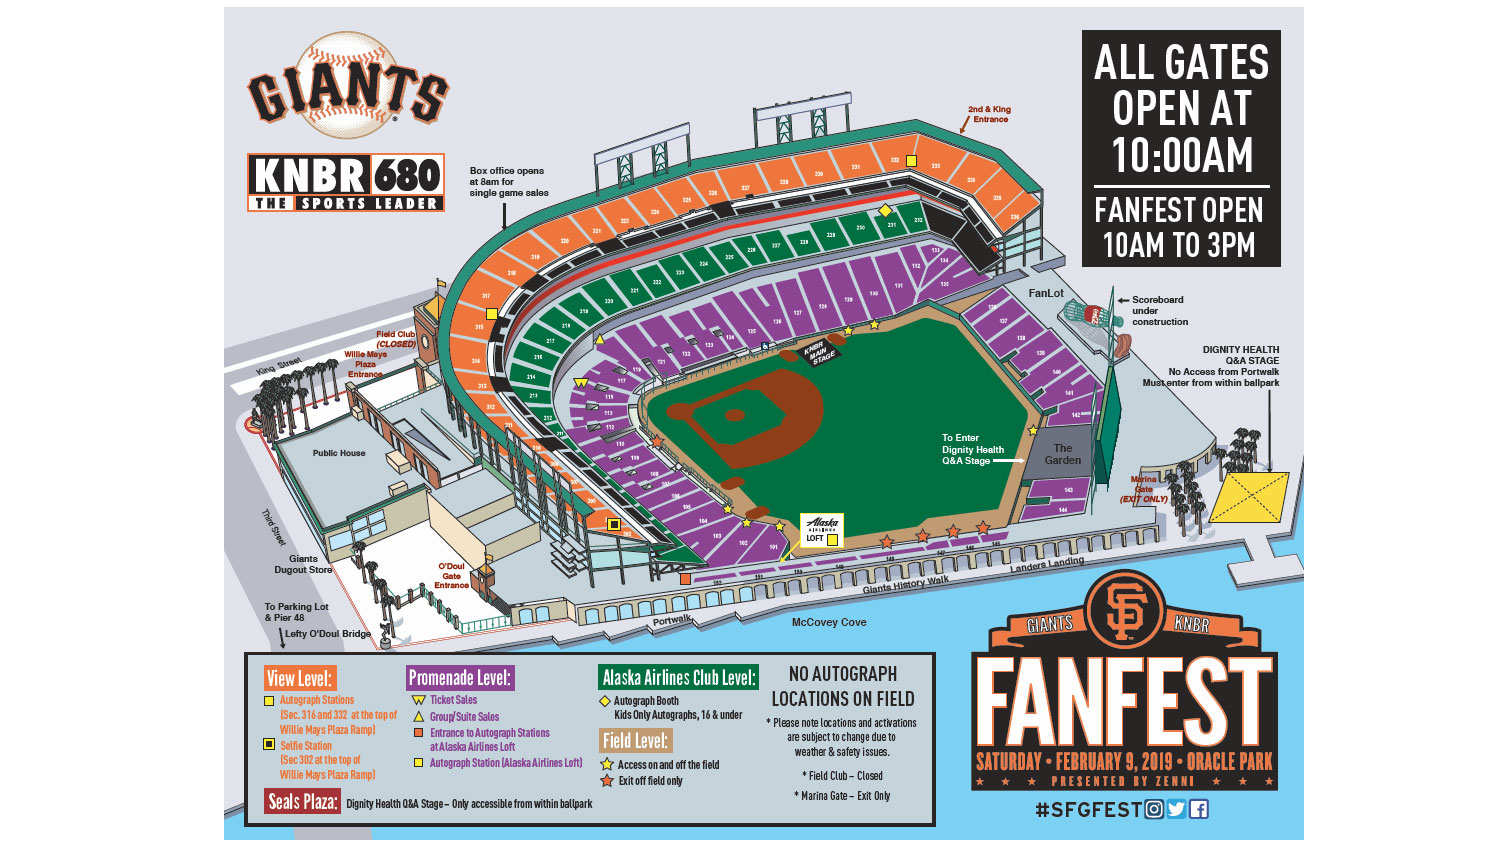 Giants FanFest | San Francisco Giants on giants arena seating, giants jets stadium map, giants stadium seating numbers, giants stadium seating plan, giants stadium seating chart, giants stadium seating view, giants tailgating, giants stadium seating vip seats, giants parking map, giants merchandise, giants spring training tickets, giants at stadium view from my seat, giants schedule,